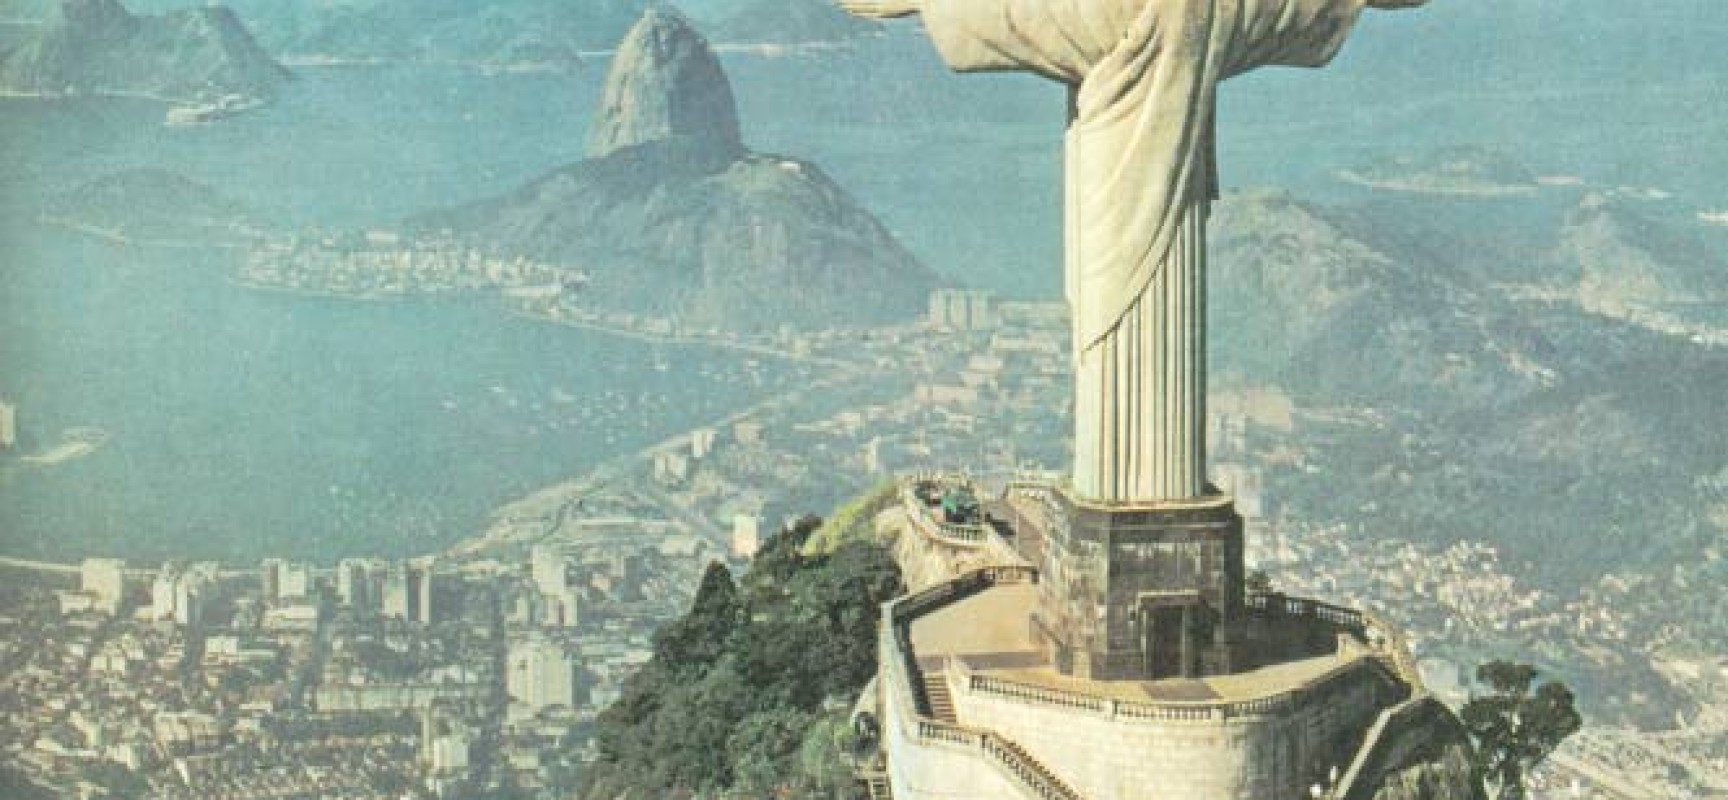 Christ The Redeemer Statue, Brazil